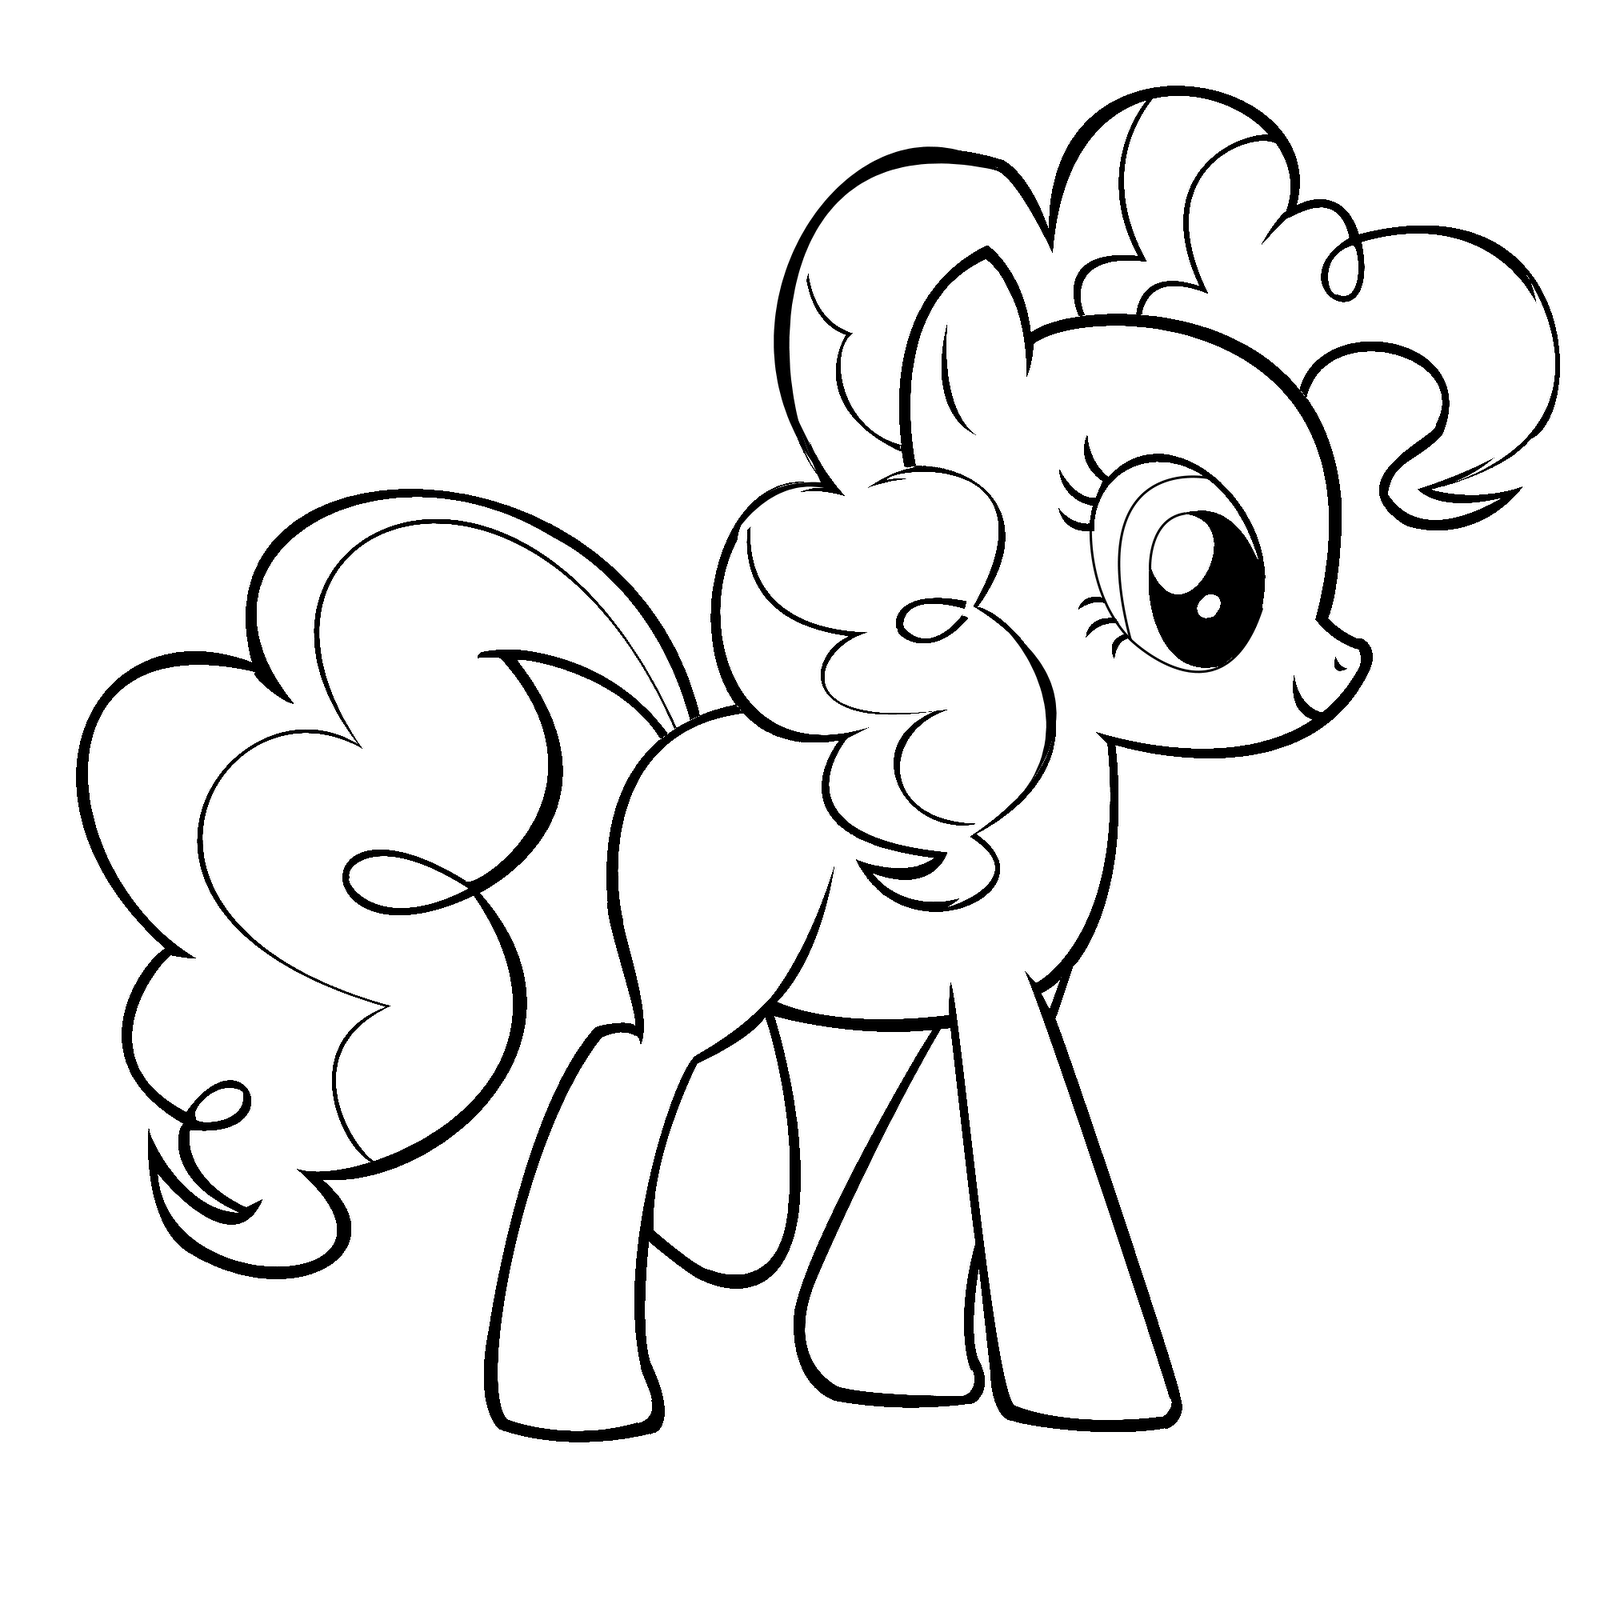 my little pony color sheet my little pony coloring page coloring home sheet my color pony little